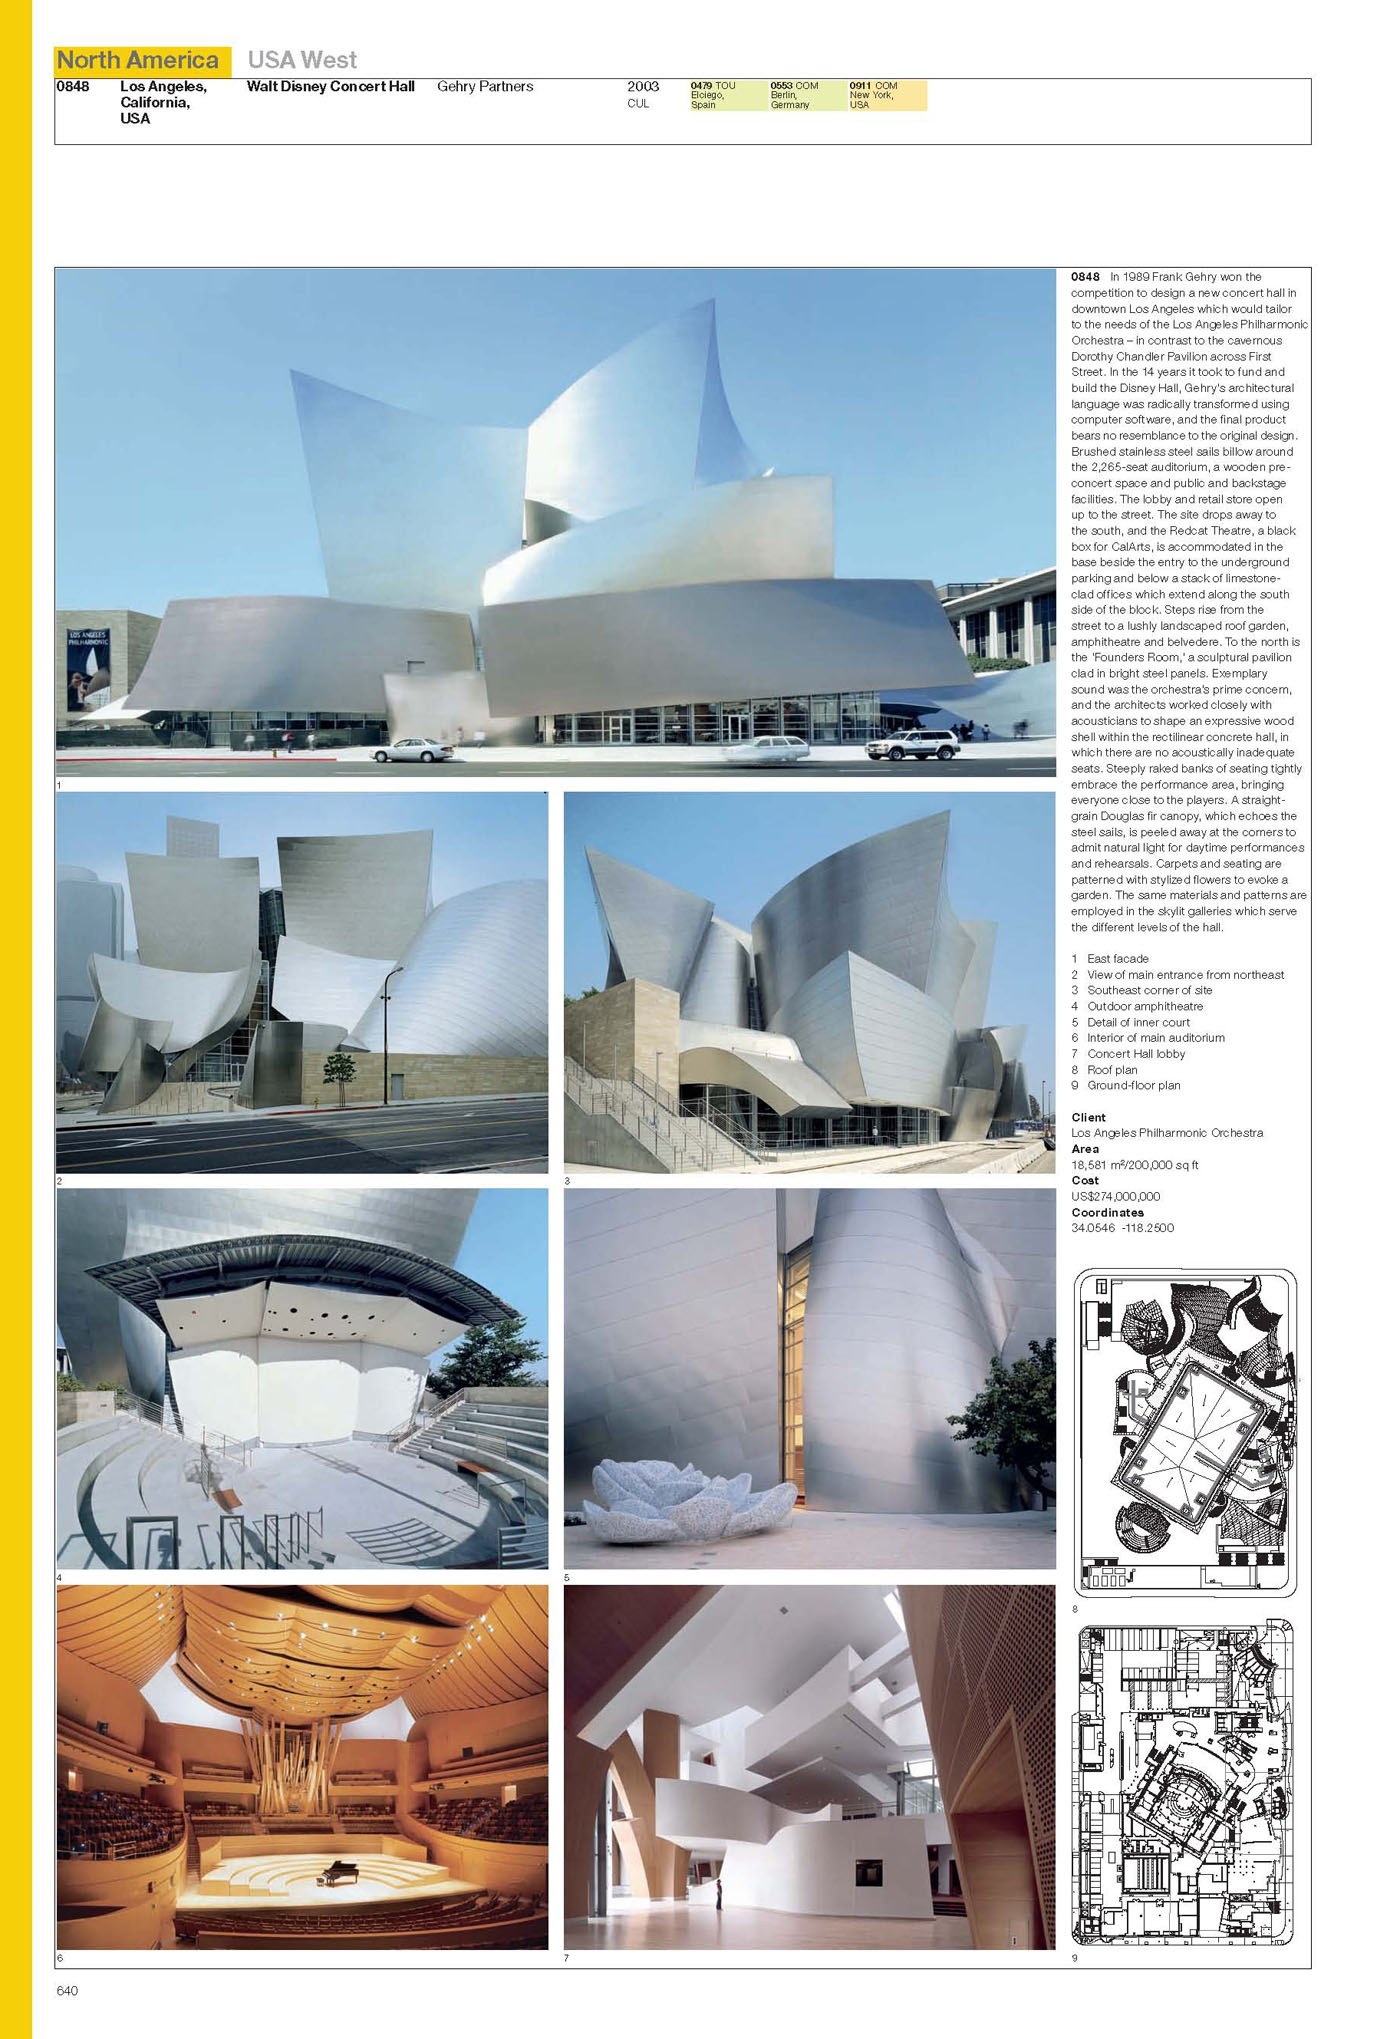 Architecture modular 4 page 6 39099727 94578567 solutioingenieria Image collections